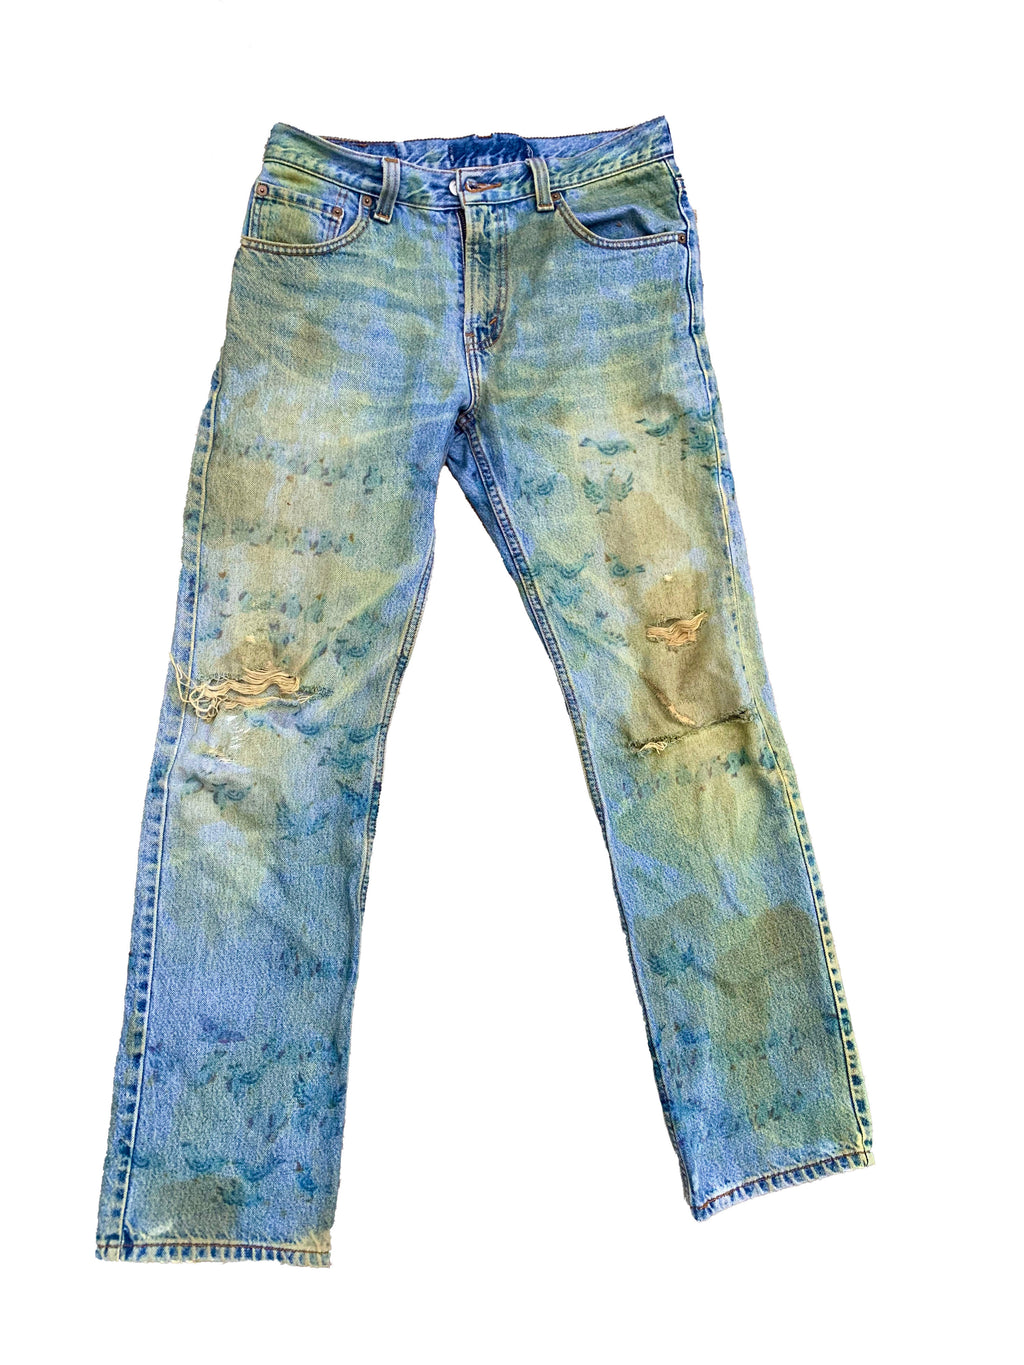 Aged Majestic Denim